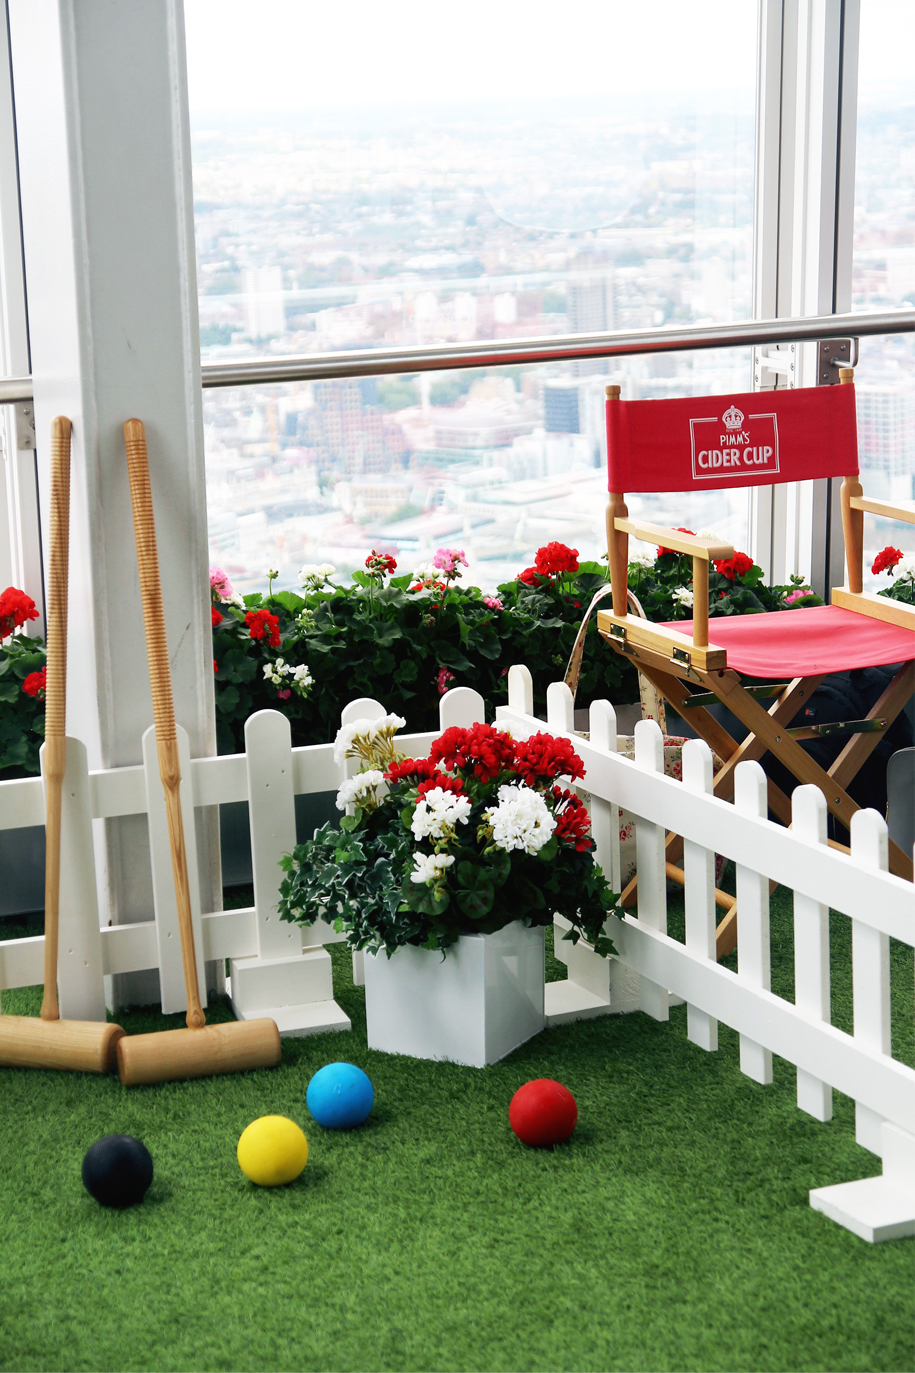 Pimms croquet lawn opens at the view from the shard 7.jpg